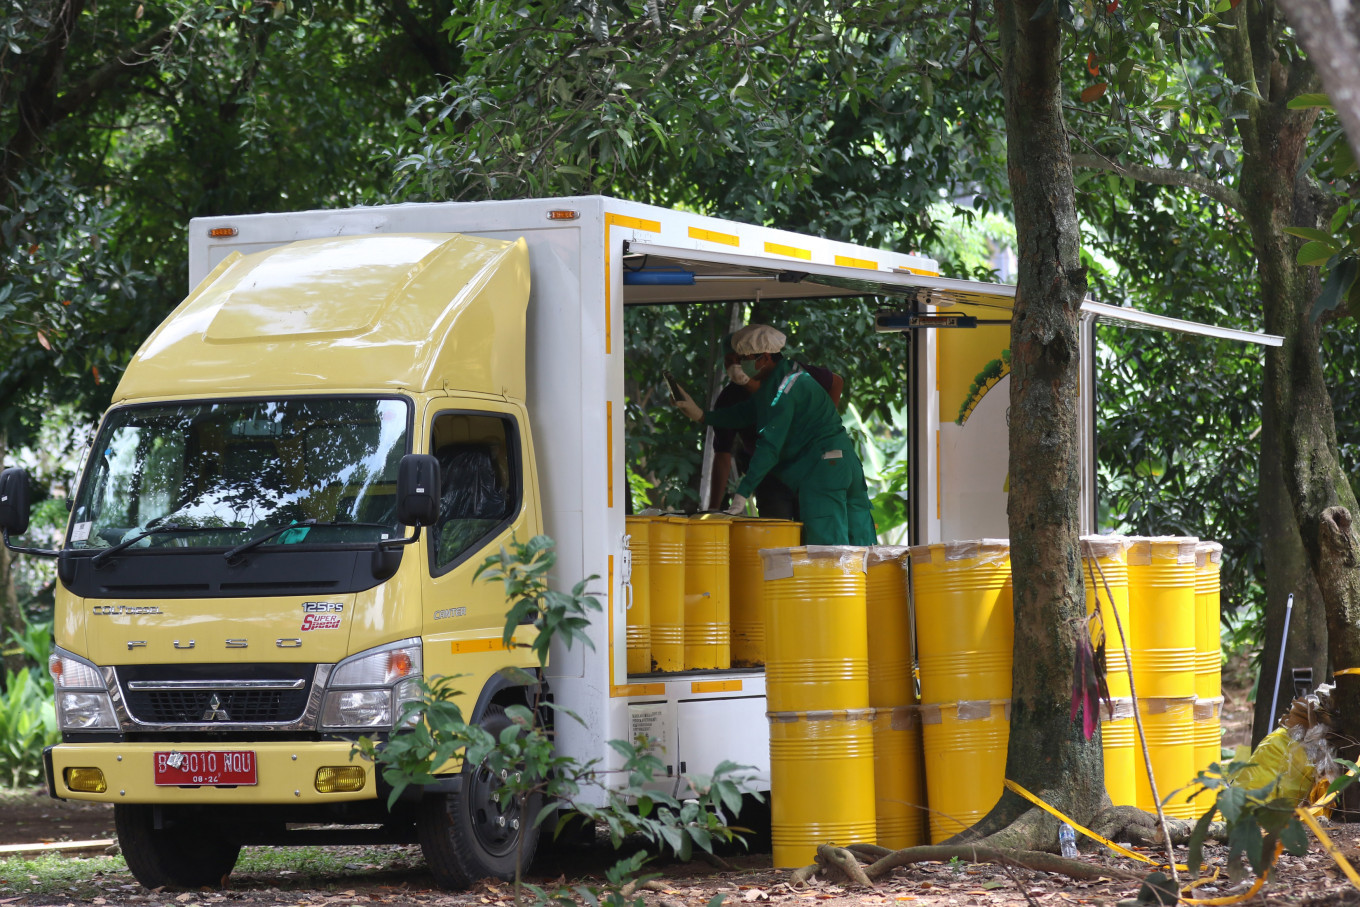 Nuclear agency collects more samples in probe into irradiated area in Banten housing complex